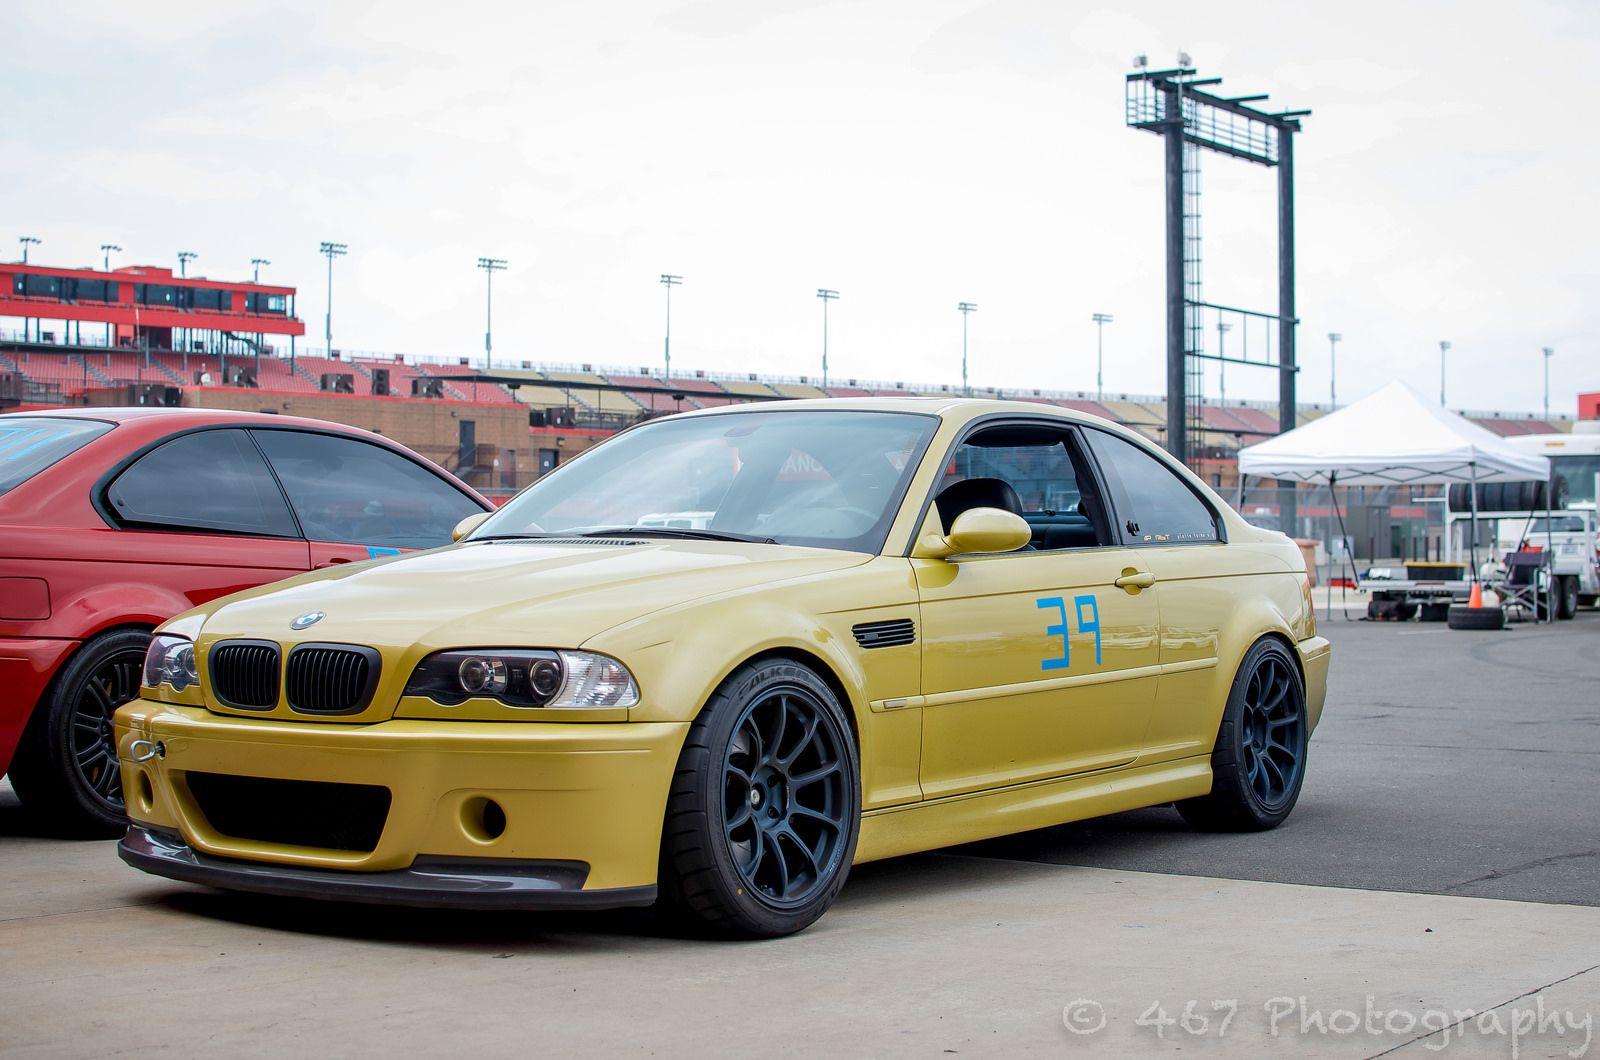 Yellow Modified Bmw E46 M3 With Images Bmw Bmw E46 Bmw M3